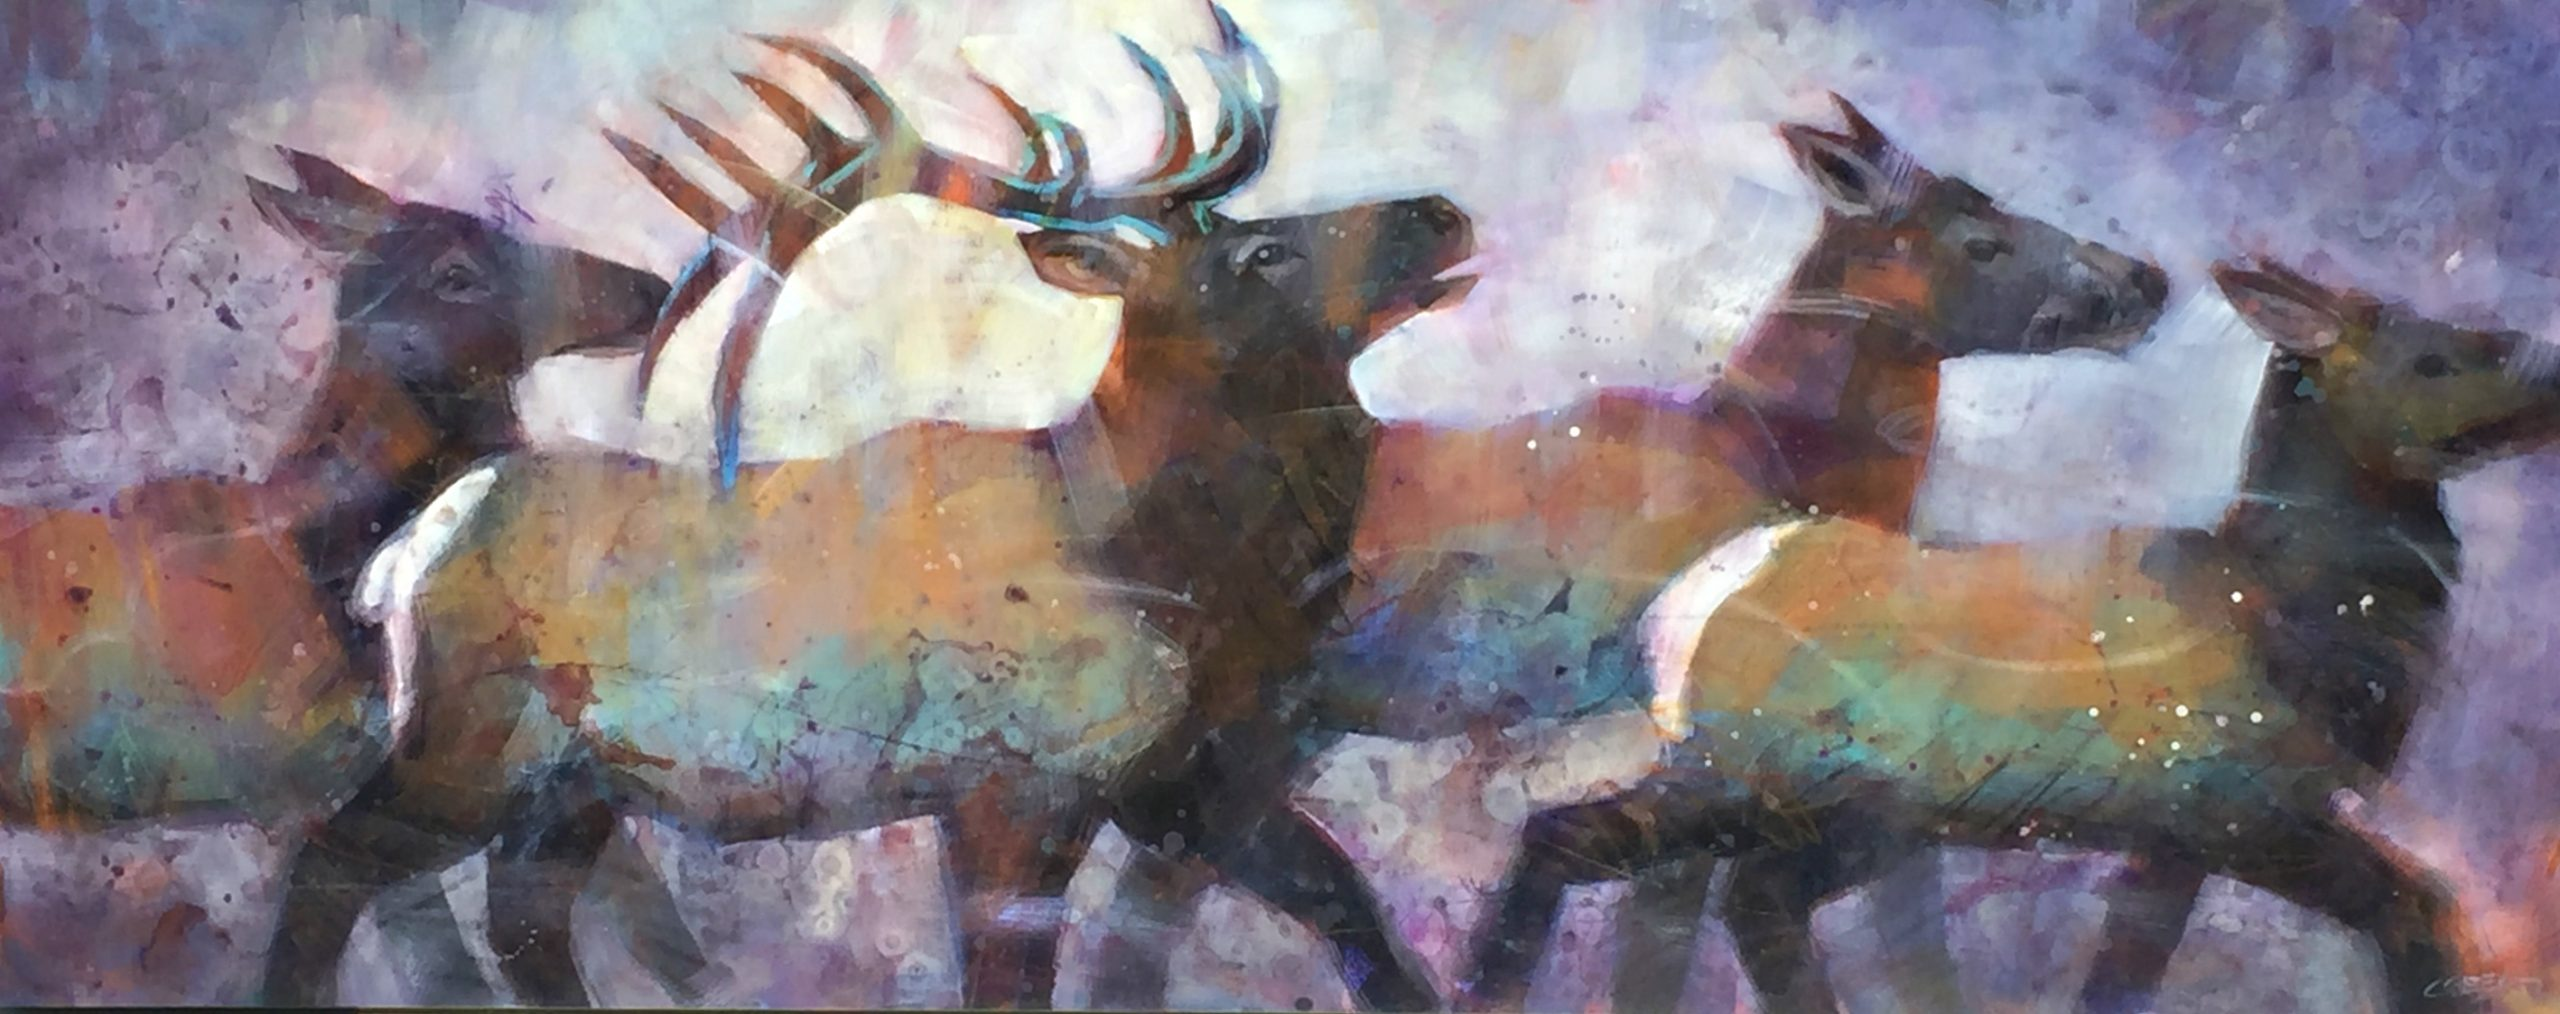 Herd Energy, acrylic elk painting by Connie Geerts | Effusion Art Gallery + Cast Glass Studio, Invermere BC